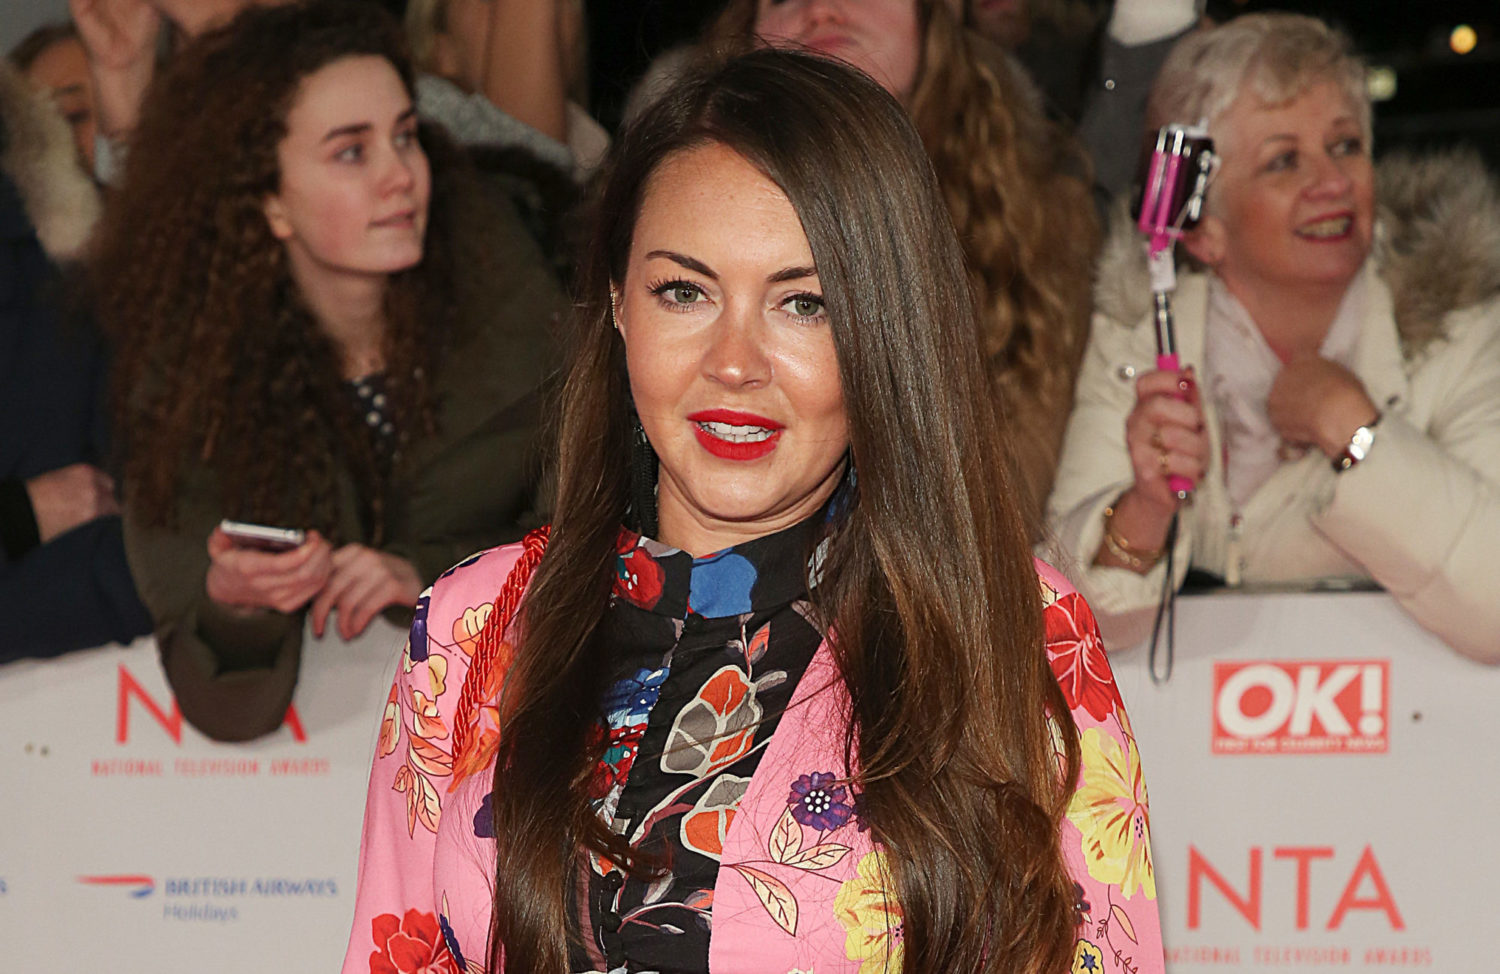 EastEnders star Lacey Turner shares adorable snap of daughter Dusty